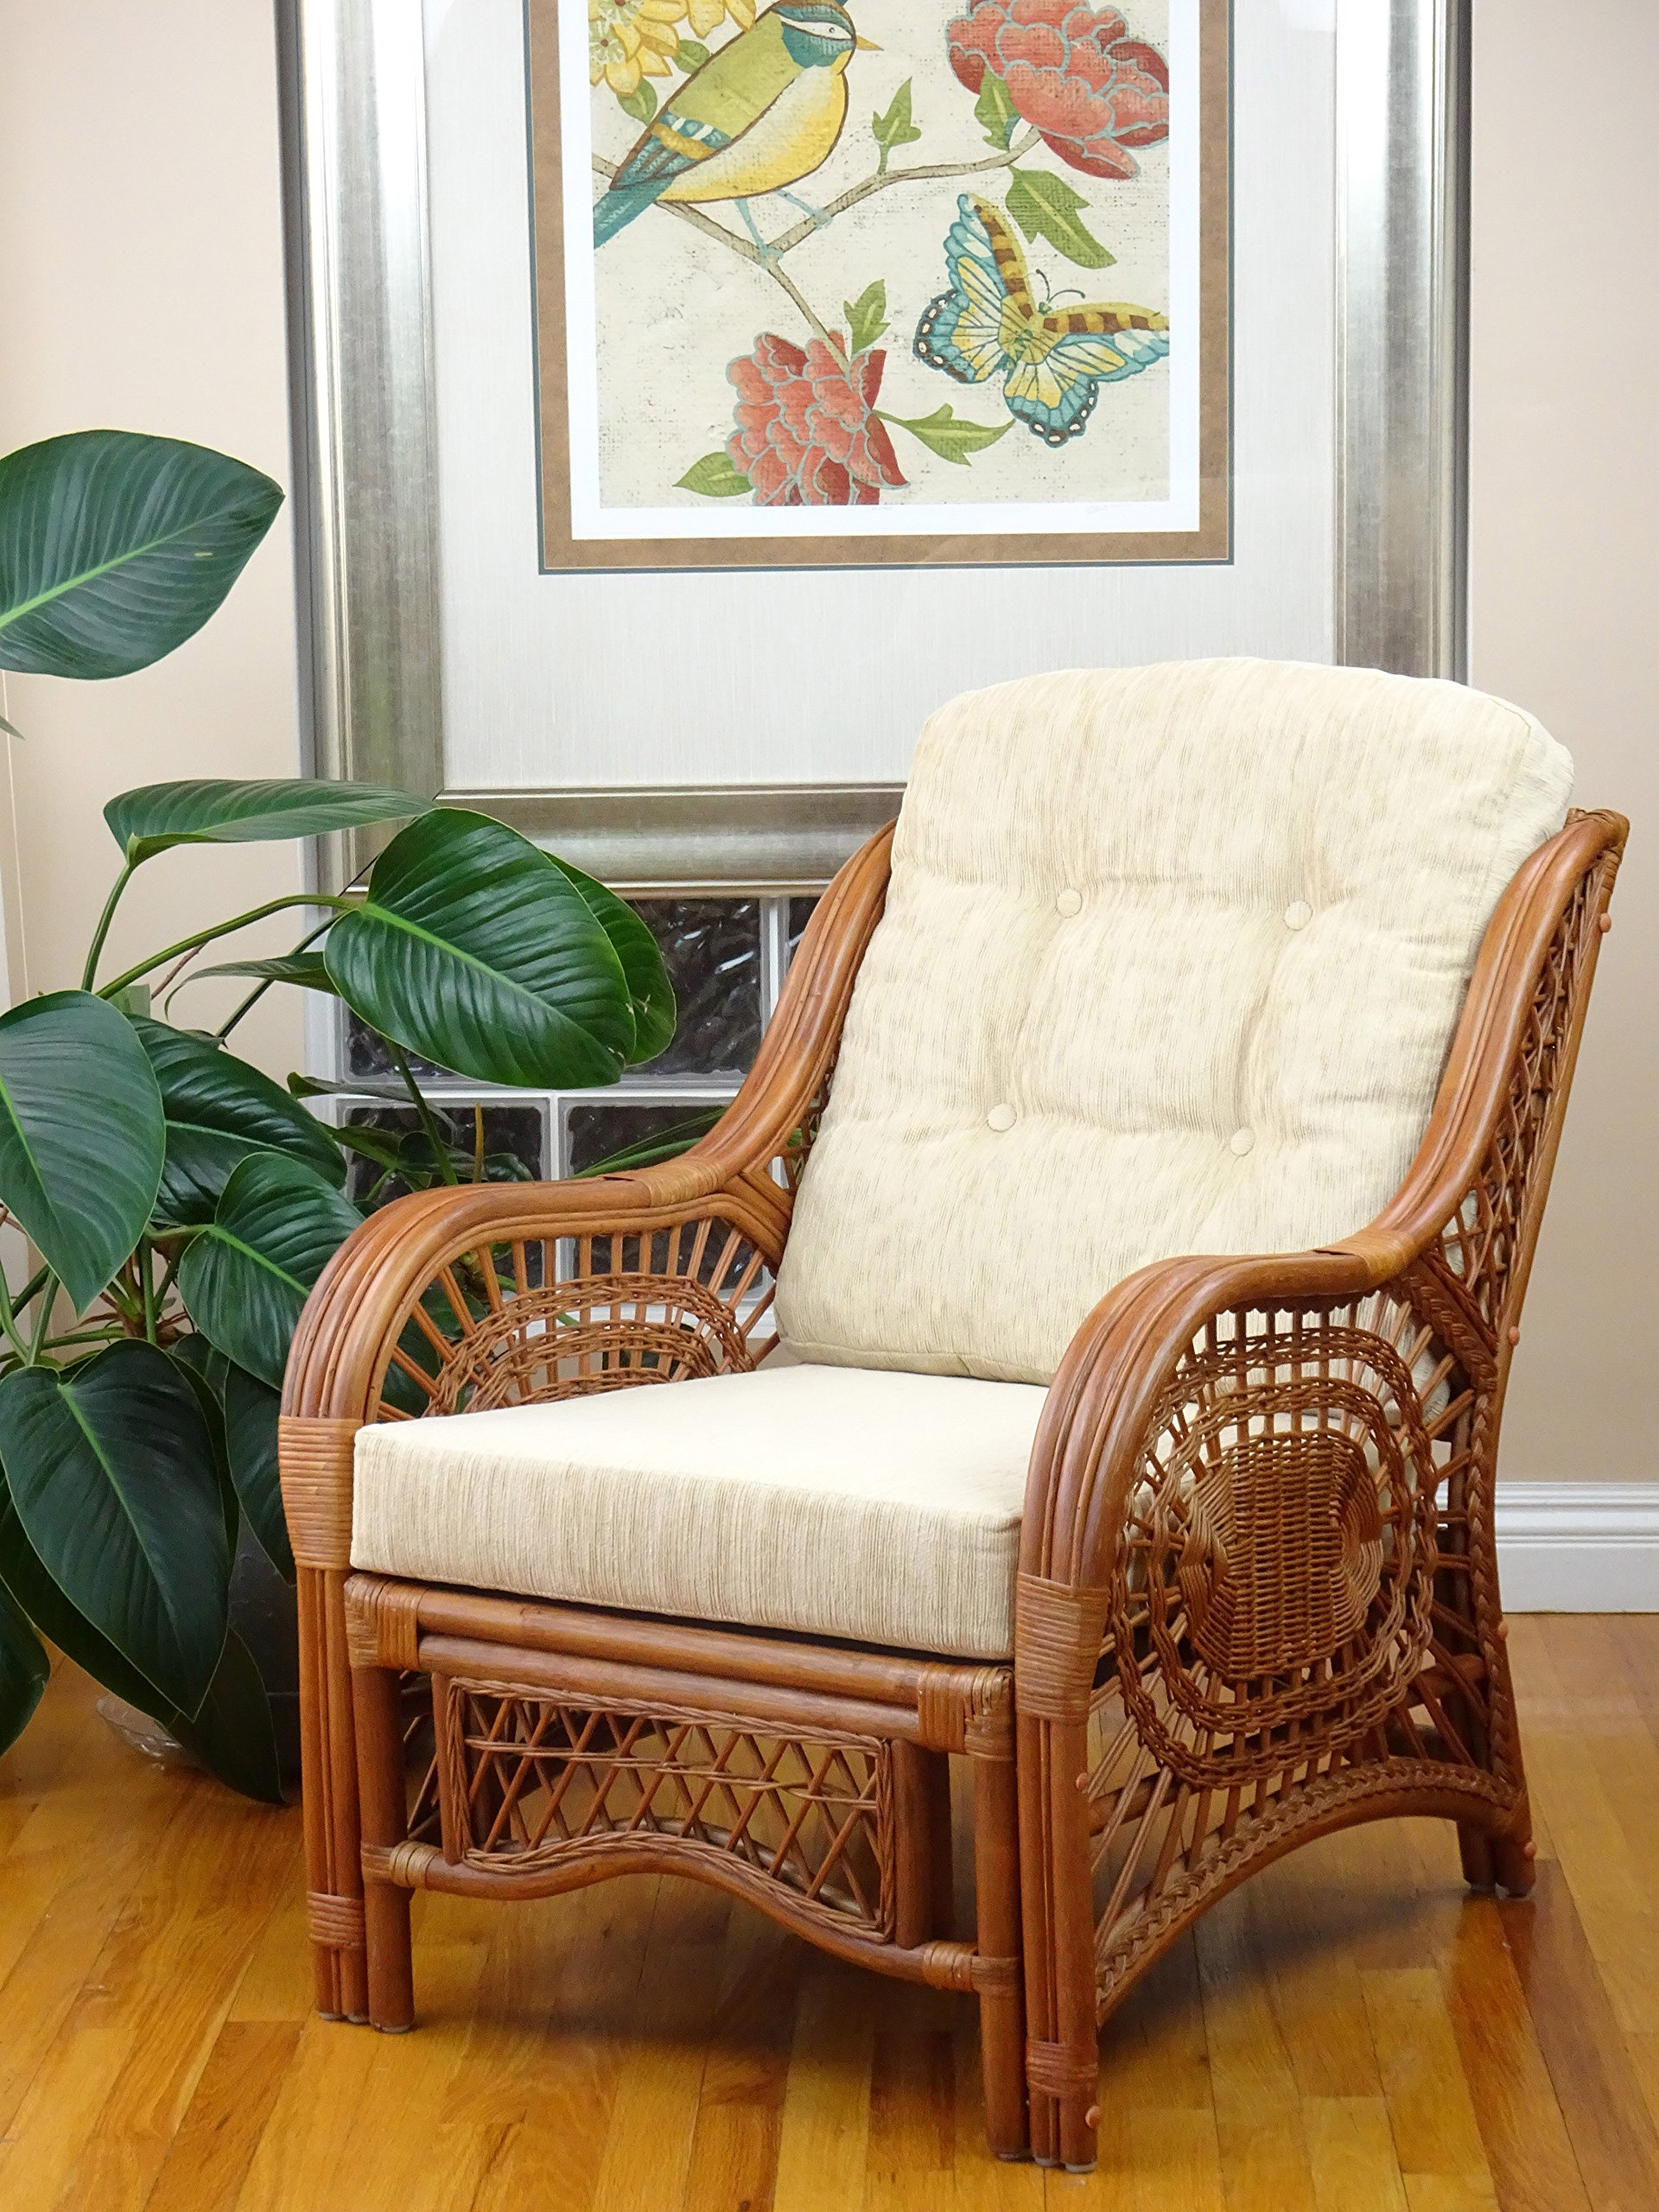 Malibu Lounge Armchair ECO Natural Rattan Wicker Handmade Design with Cream Cushion, Colonial (Light Brown) by Rattan Wicker Furniture